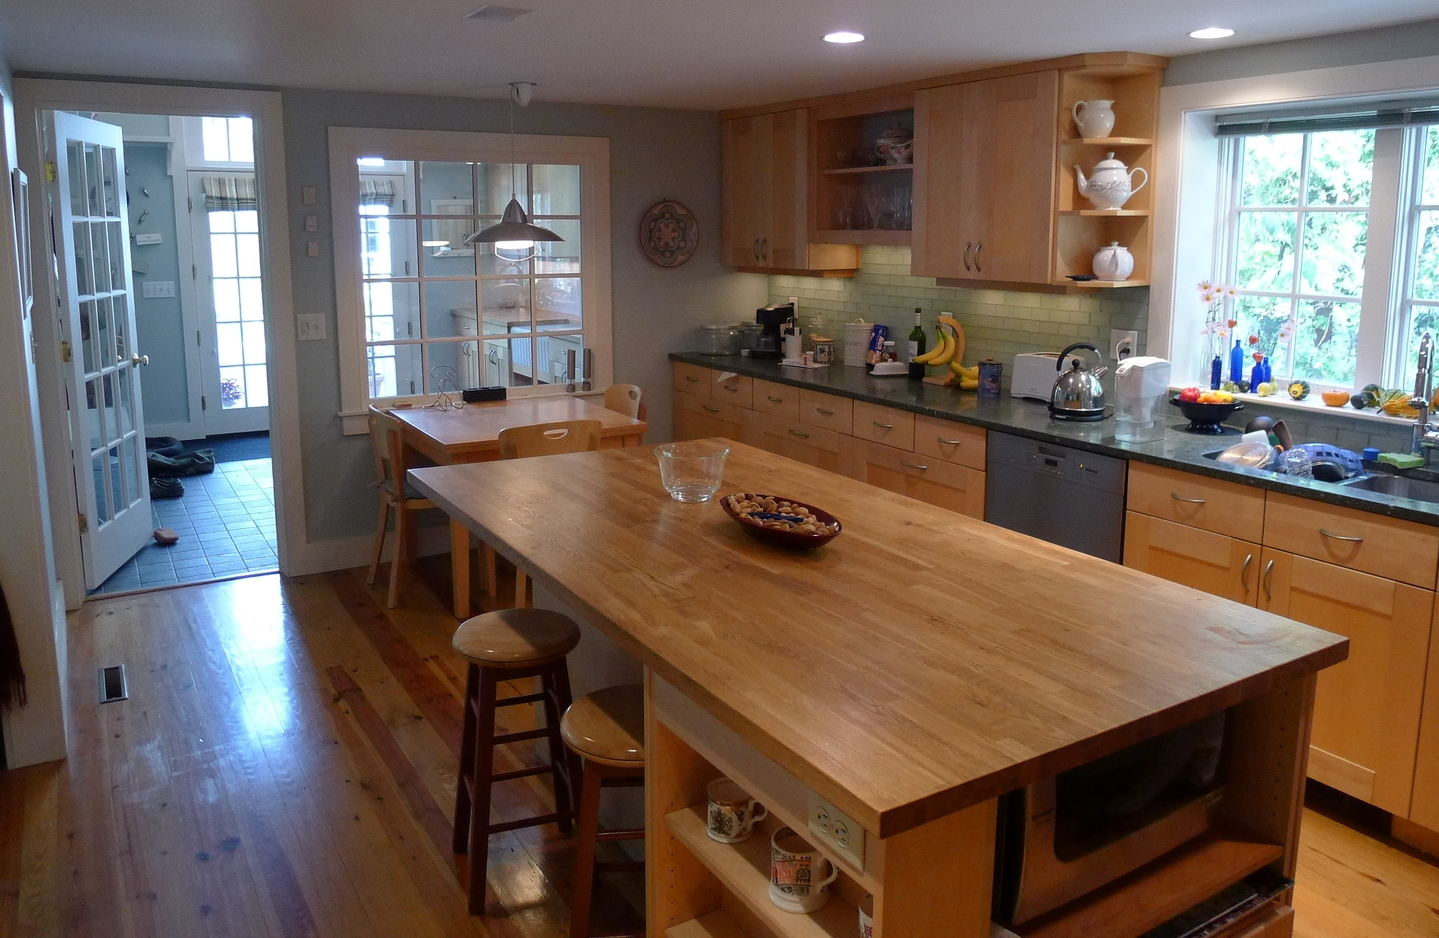 The new kitchen island and cabinets, with new Garden Room beyond.